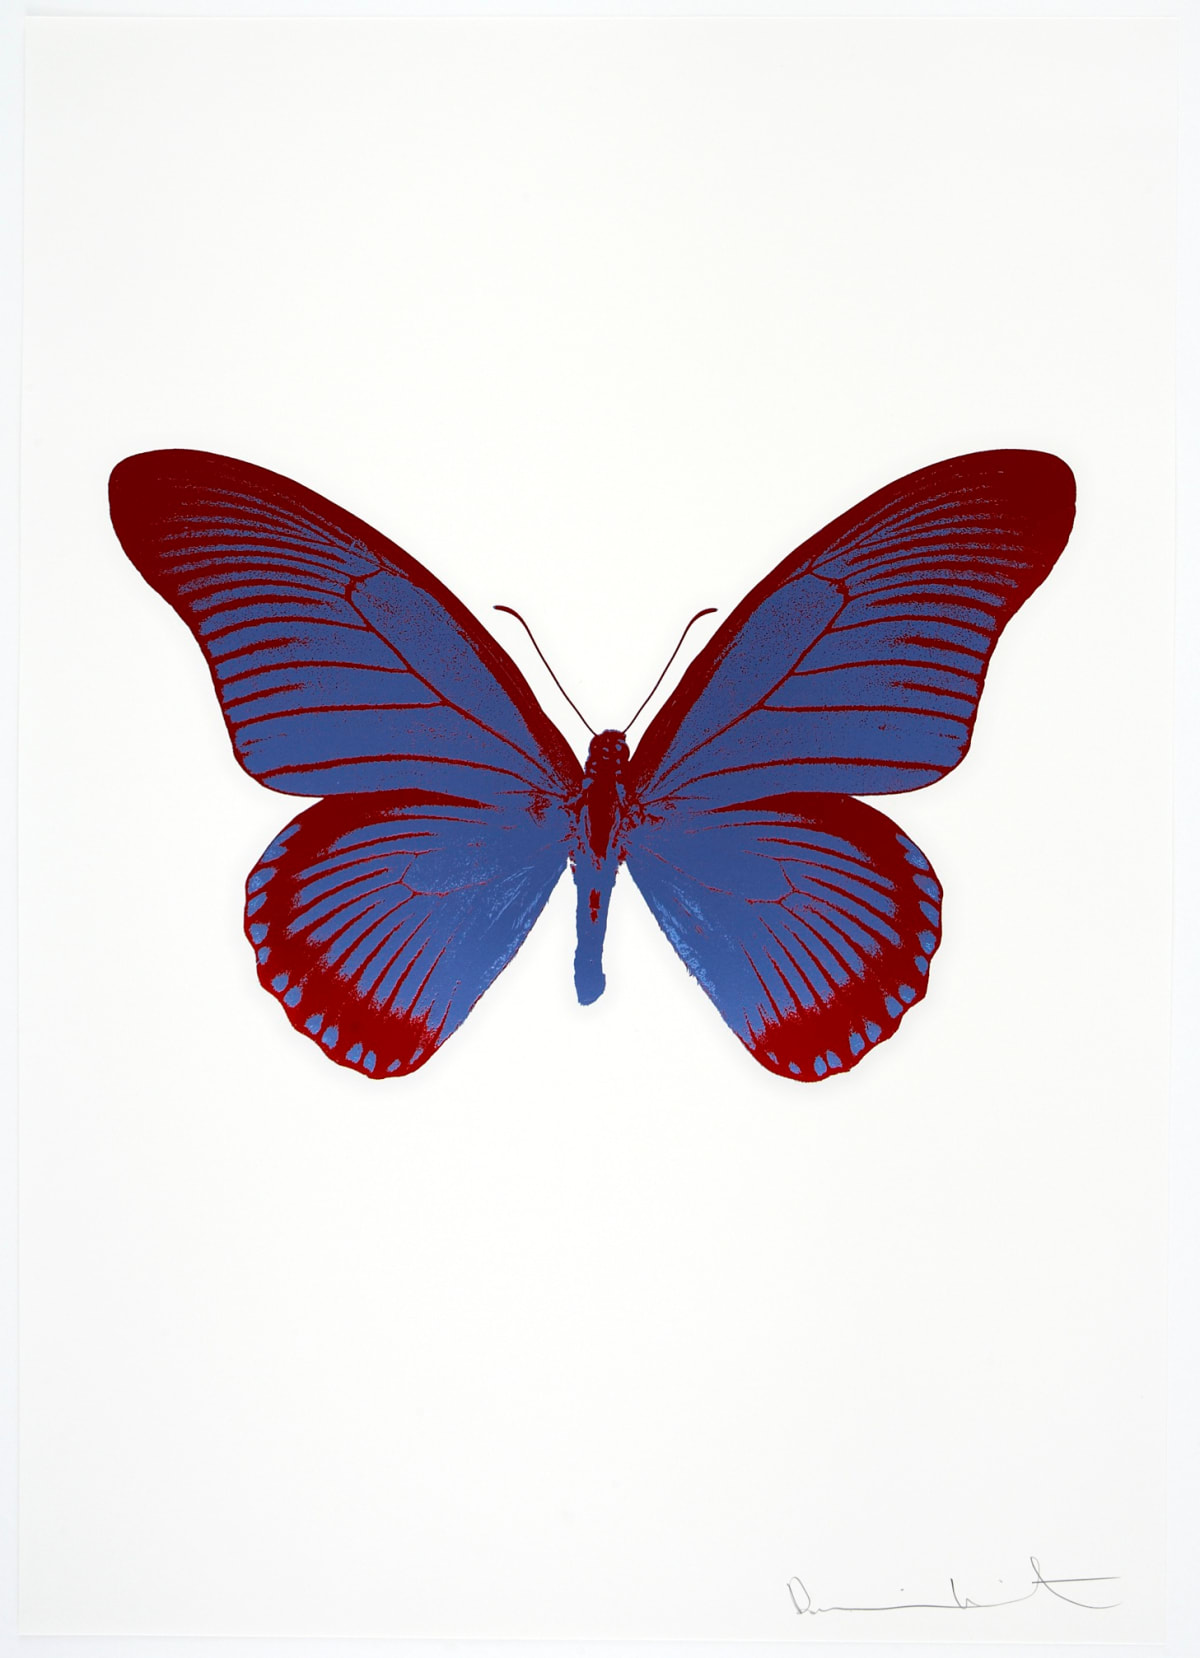 Damien Hirst The Souls IV - Frost Blue/Chilli Red, 2010 2 colour foil block on 300gsm Arches 88 archival paper. Signed and numbered. Published by Paul Stolper and Other Criteria 72 x 51cm OC8007 / 1418-3 Edition of 15